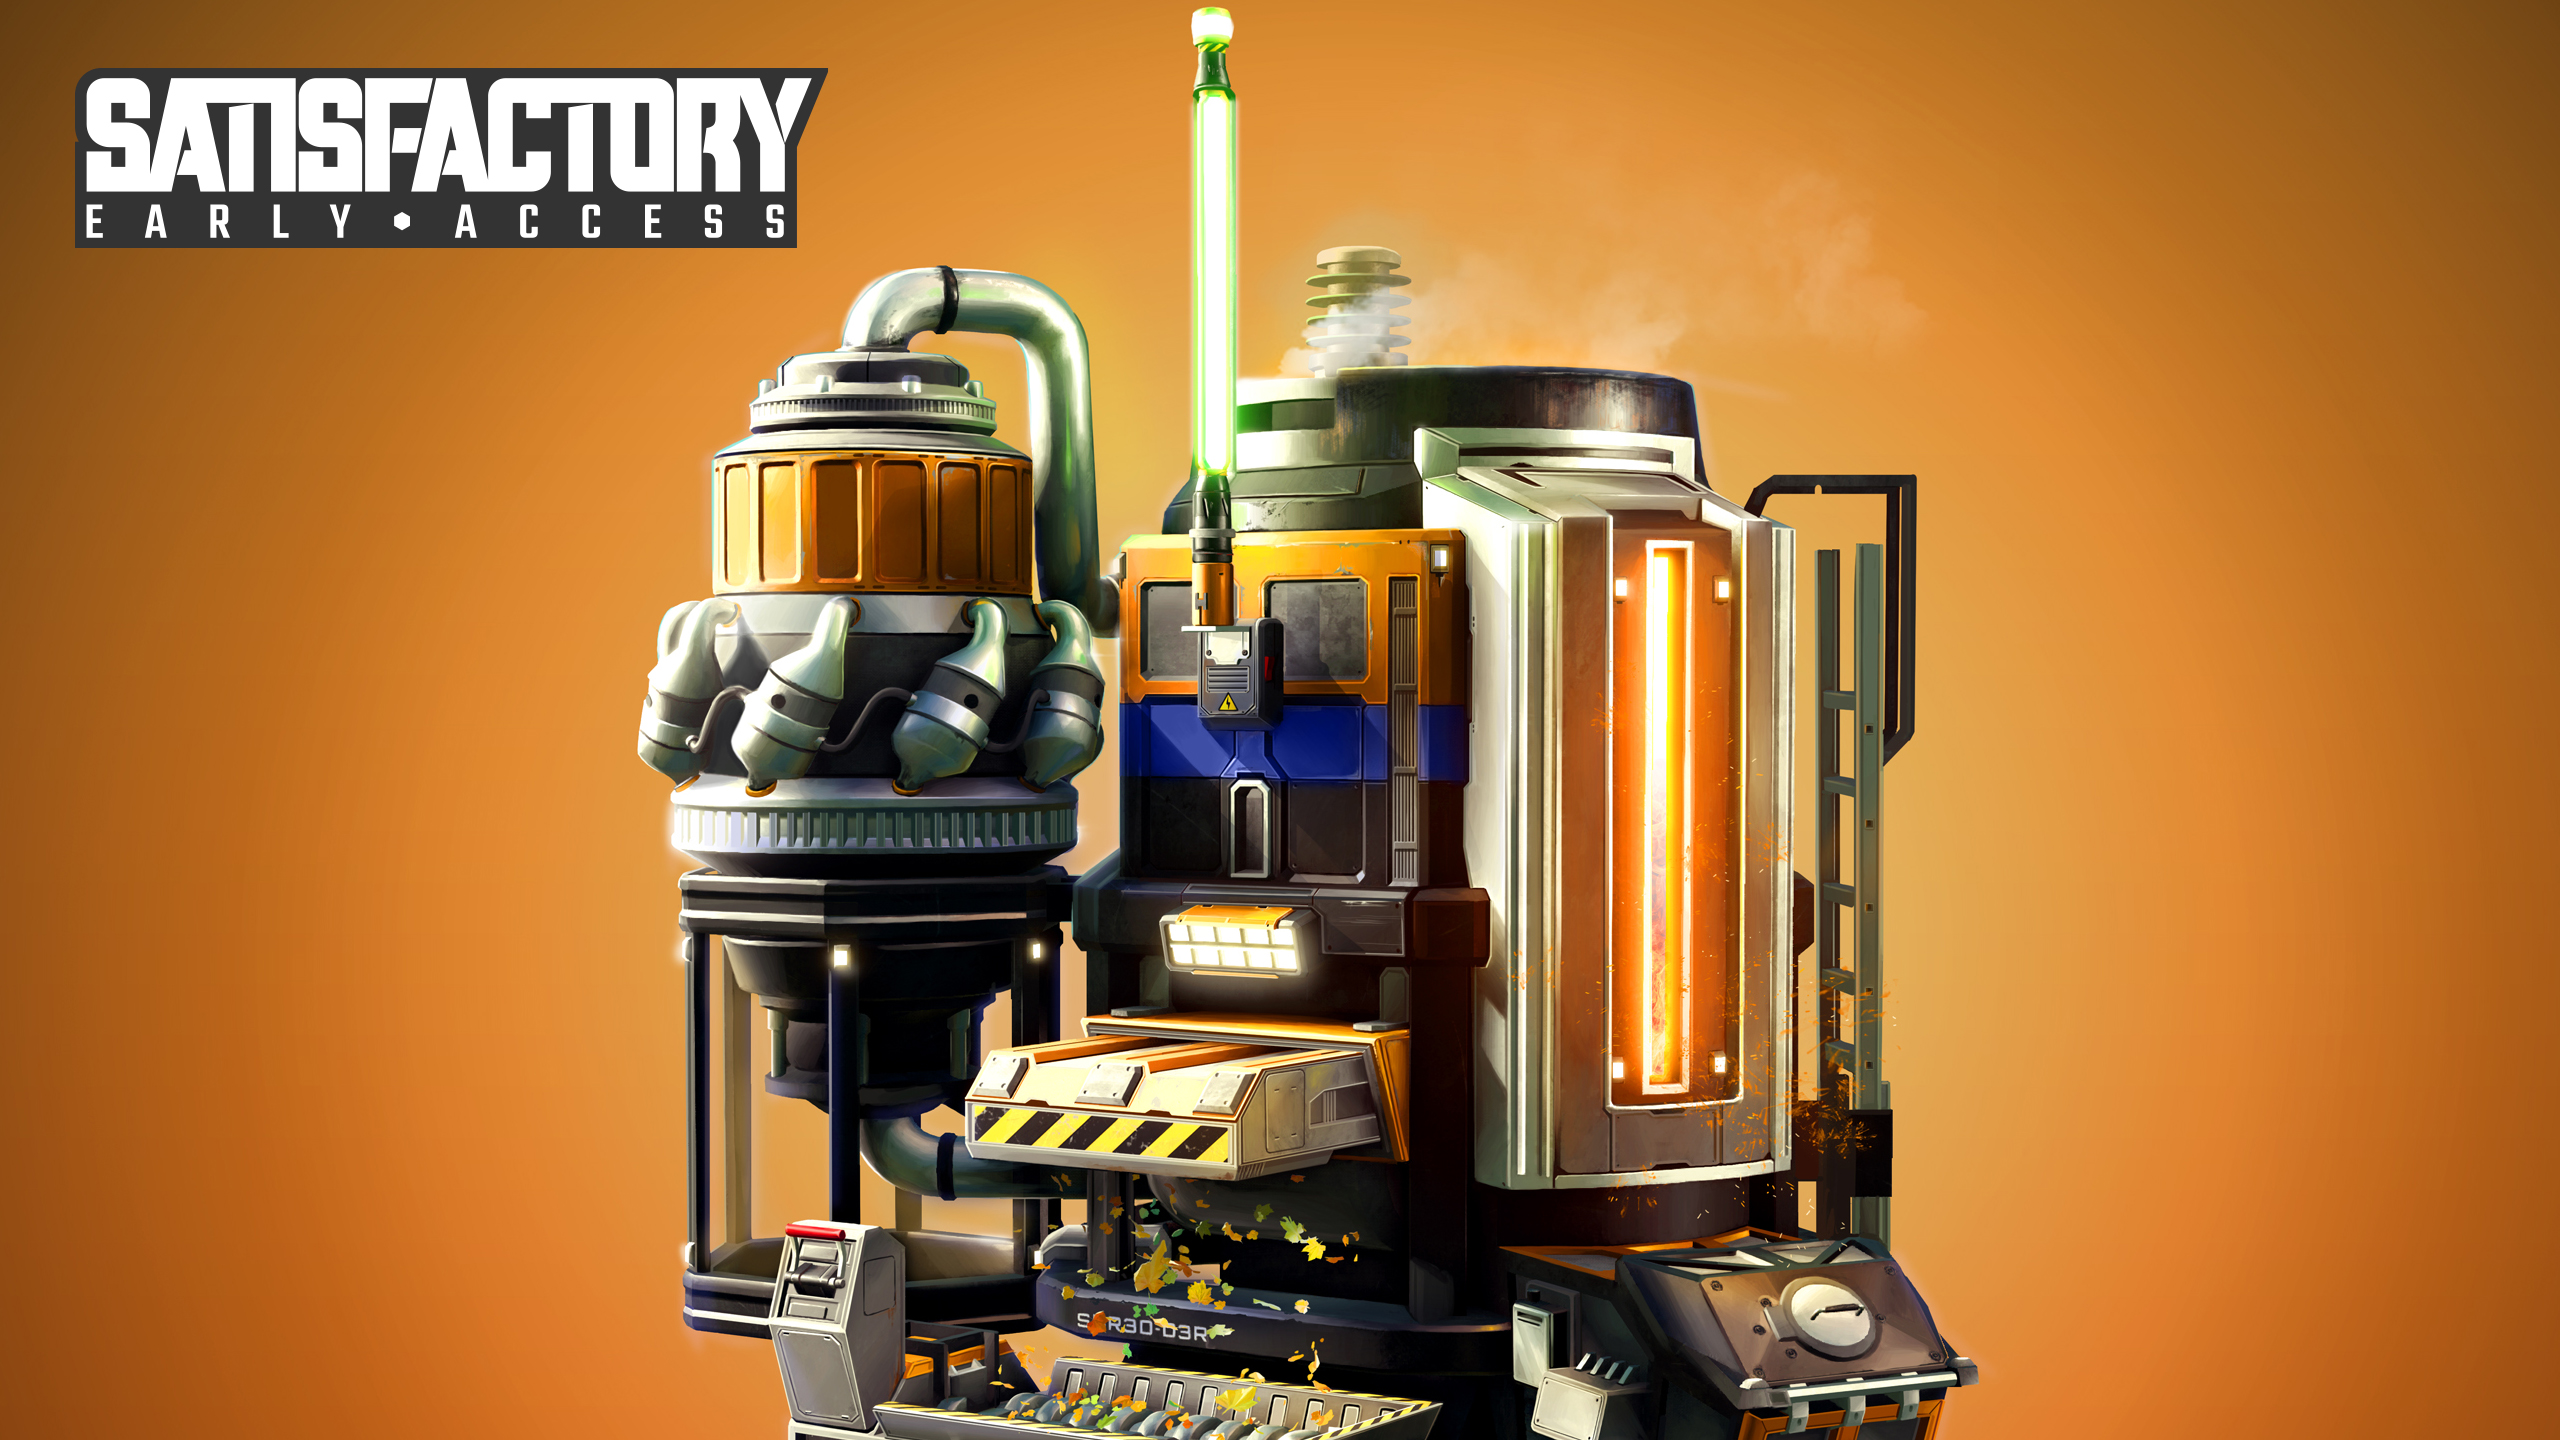 Conquer Nature, Build Incredible Machines, Explore An Alien Planet. 'Satisfactory' Is Available Now!